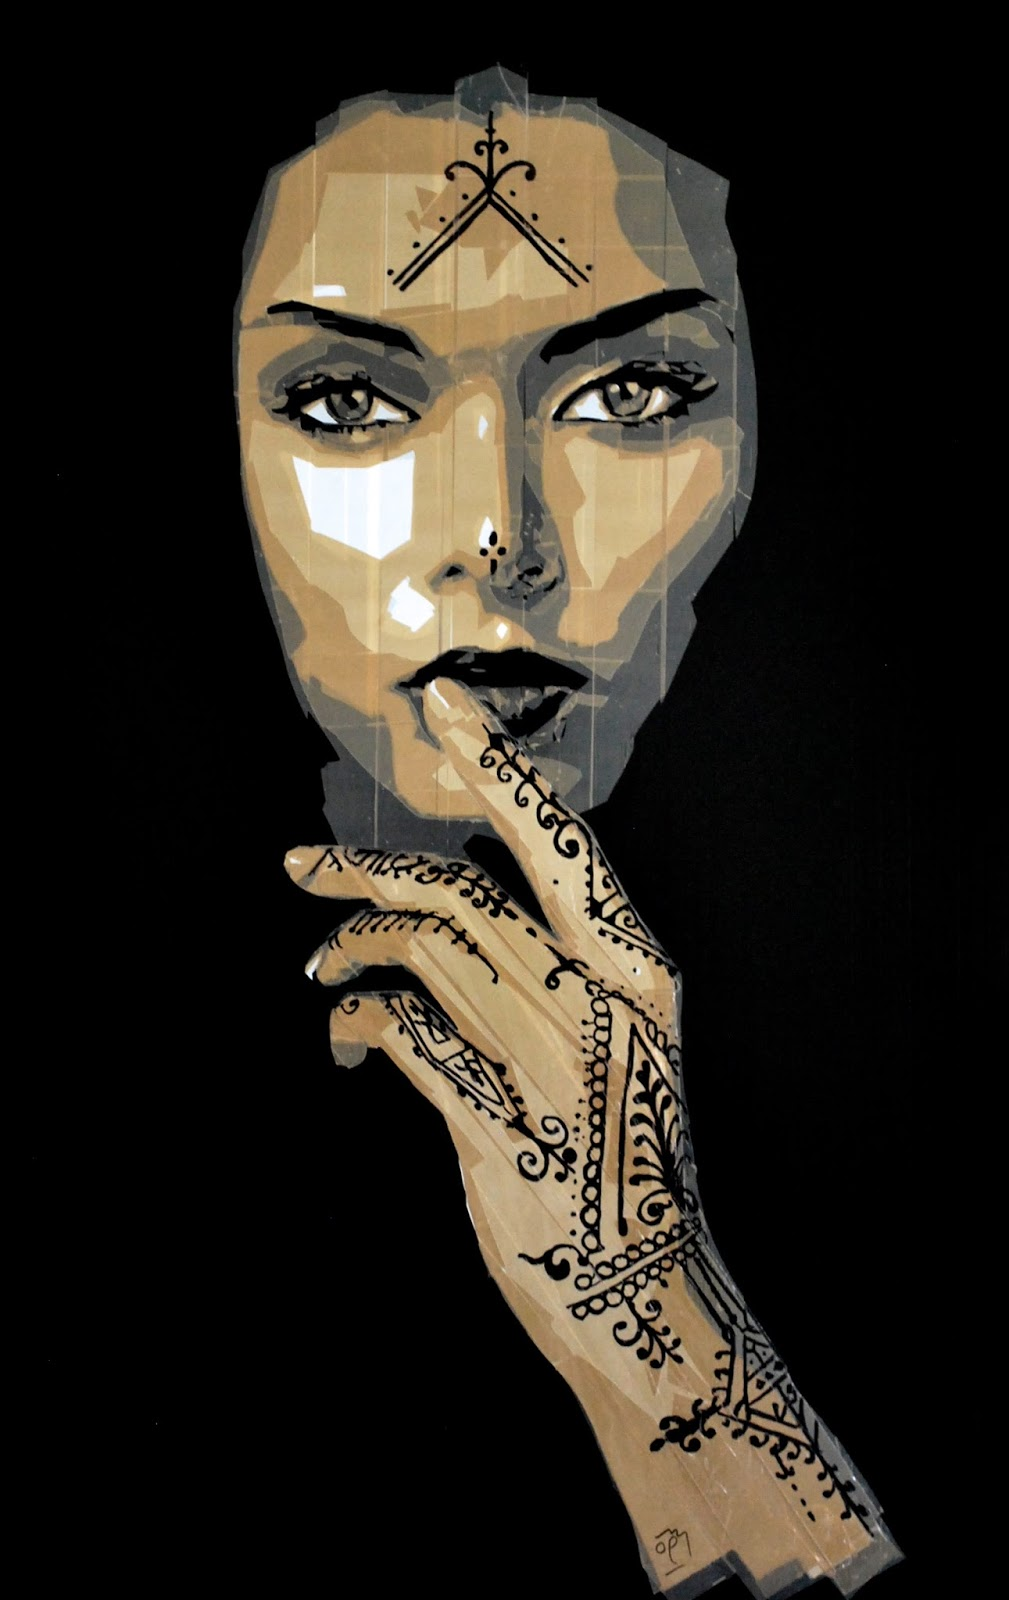 Packaging tape art of Henna girl